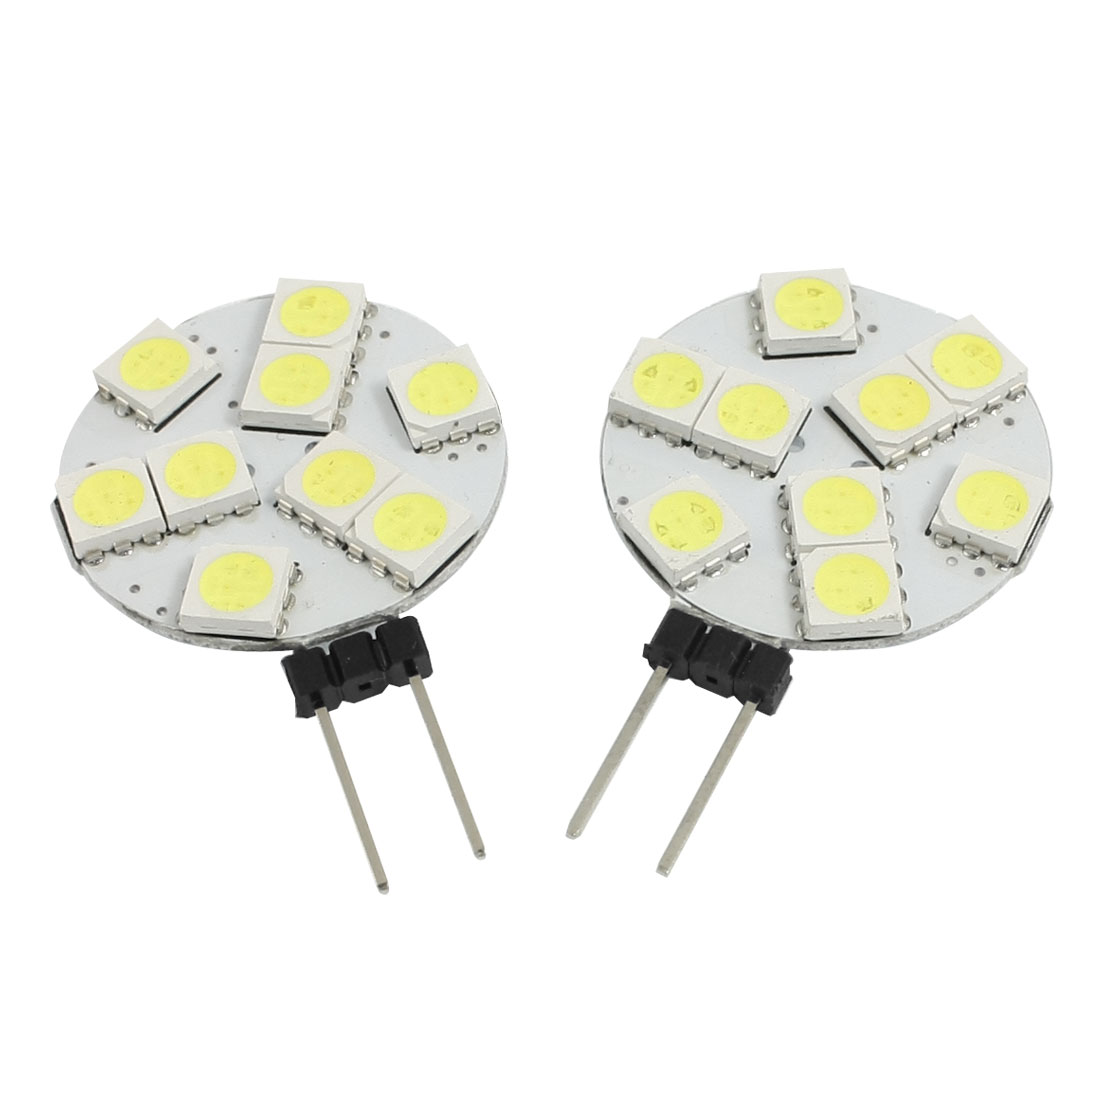 2 Pcs Car Auto G4 White 5050 SMD 9-LED Lamp Lights Side Pin Bulb